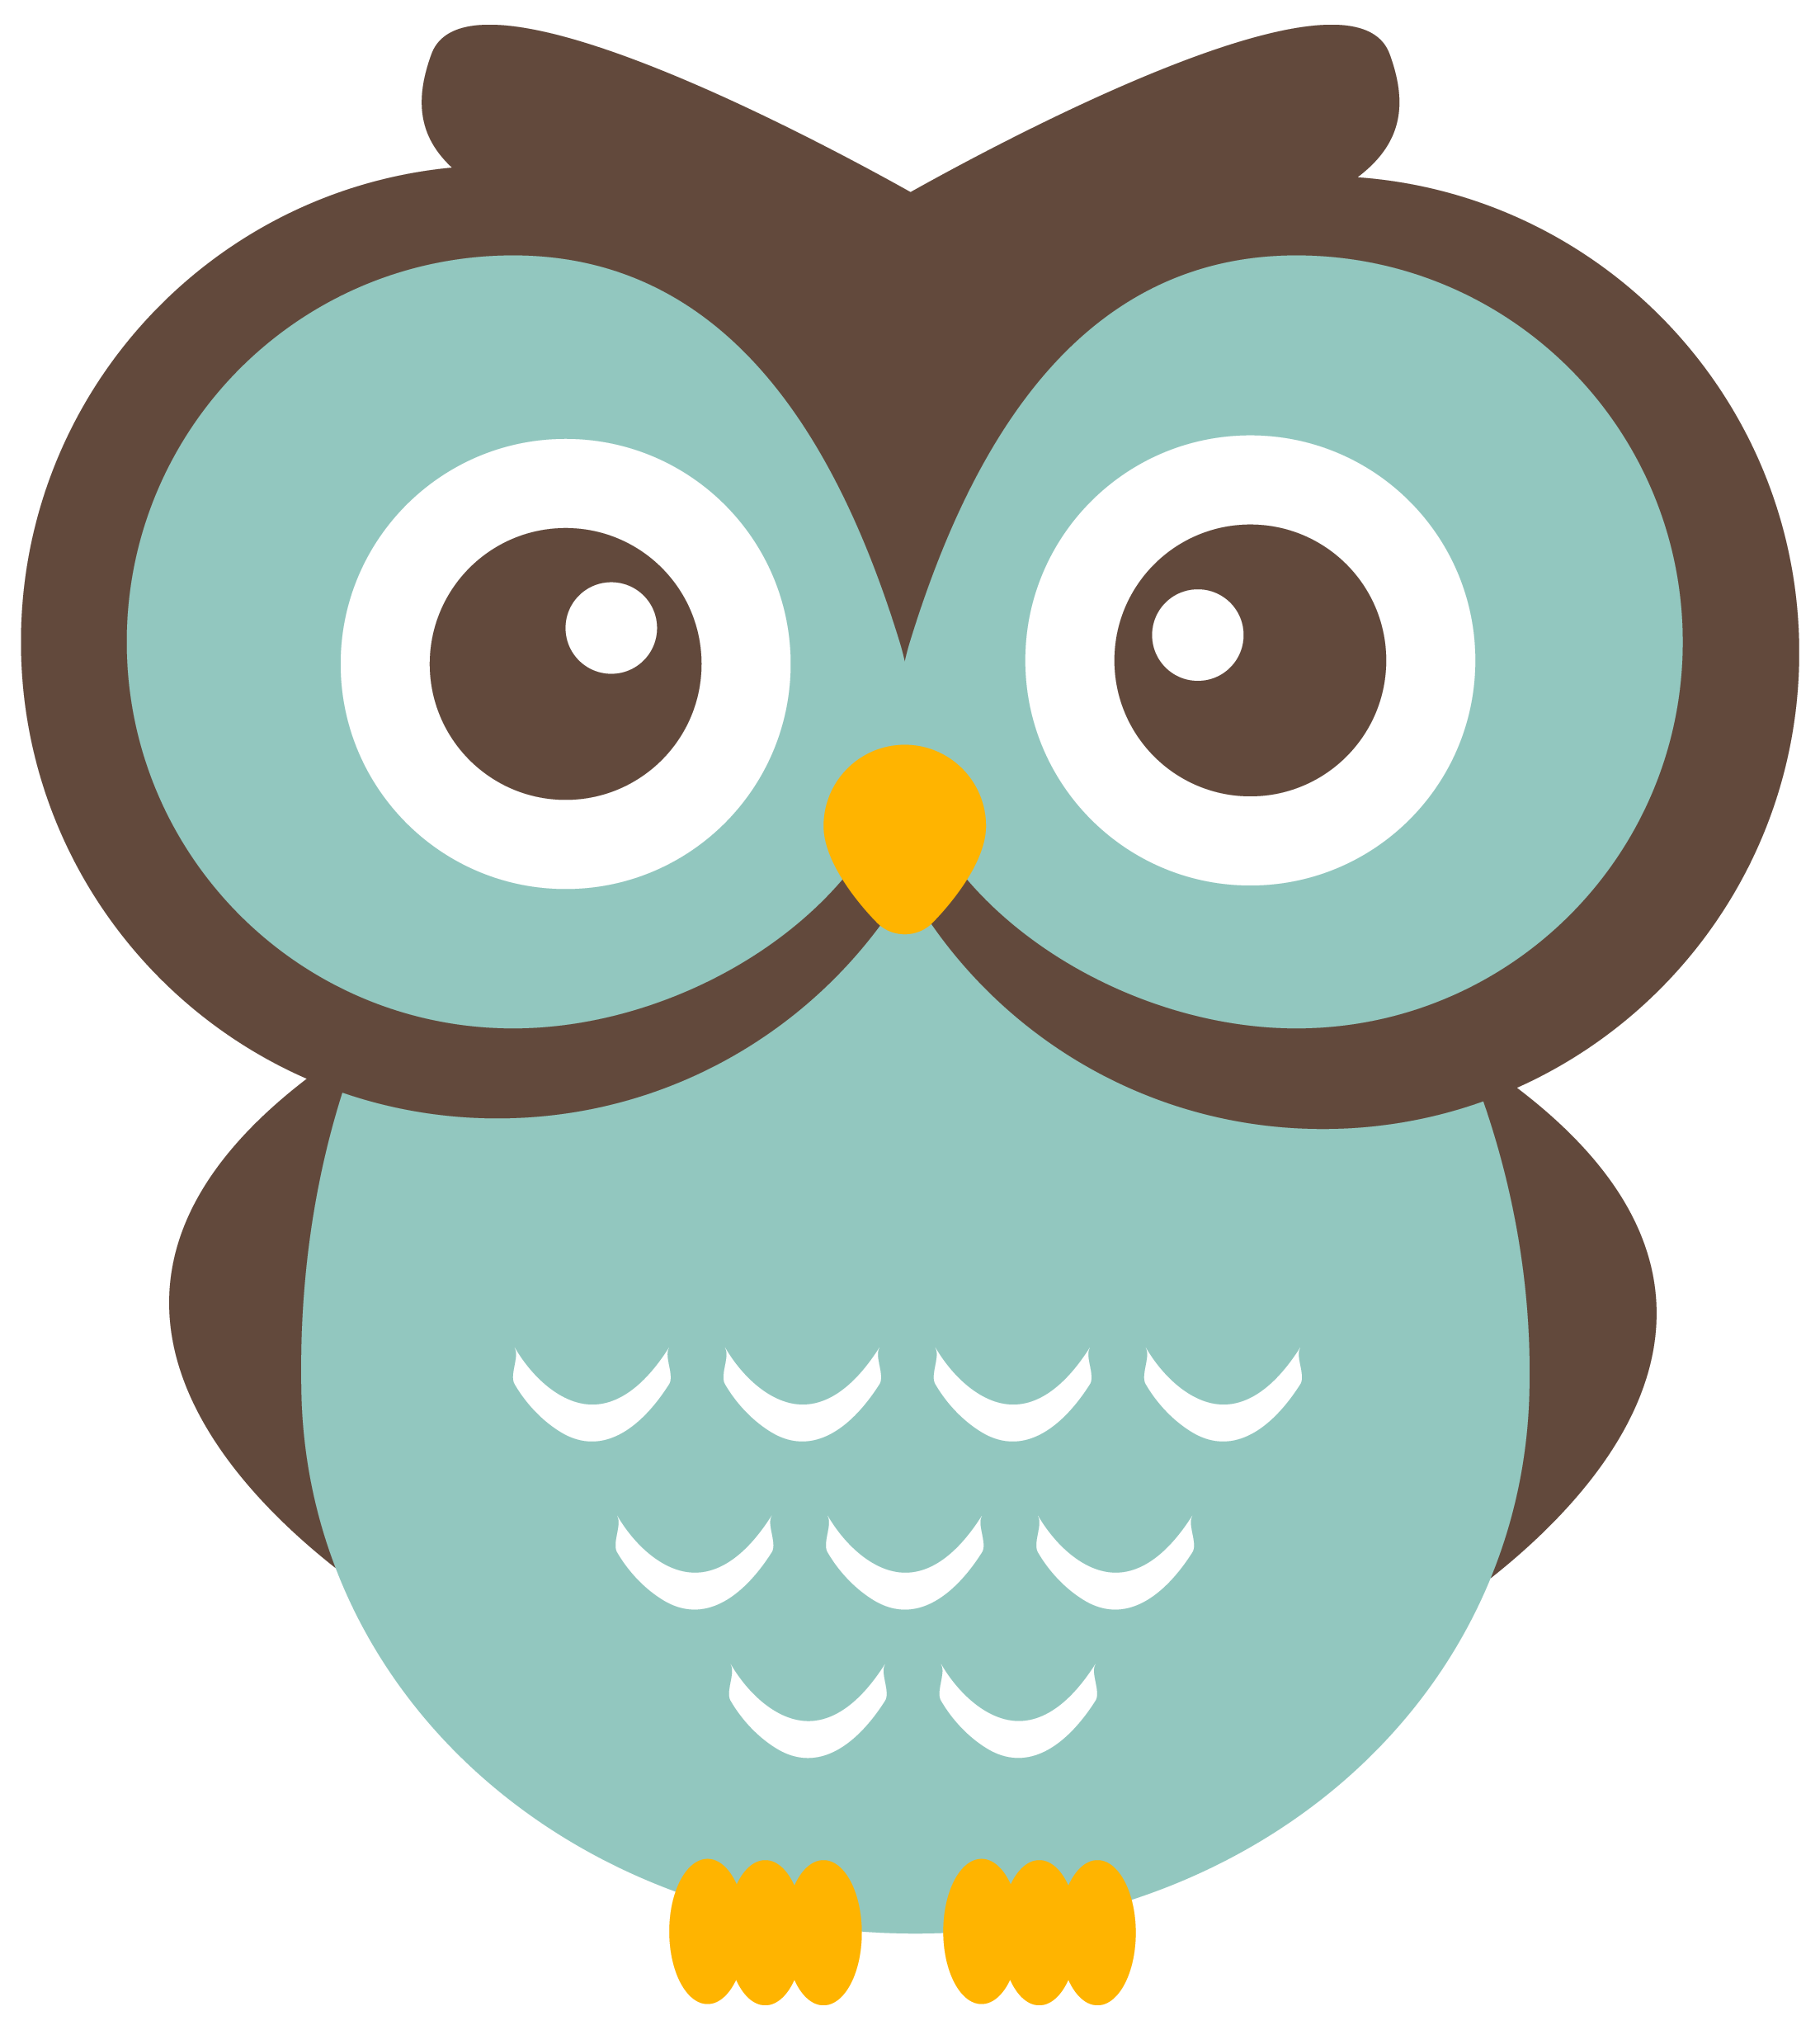 Teal Owl Clipart (free download to use).